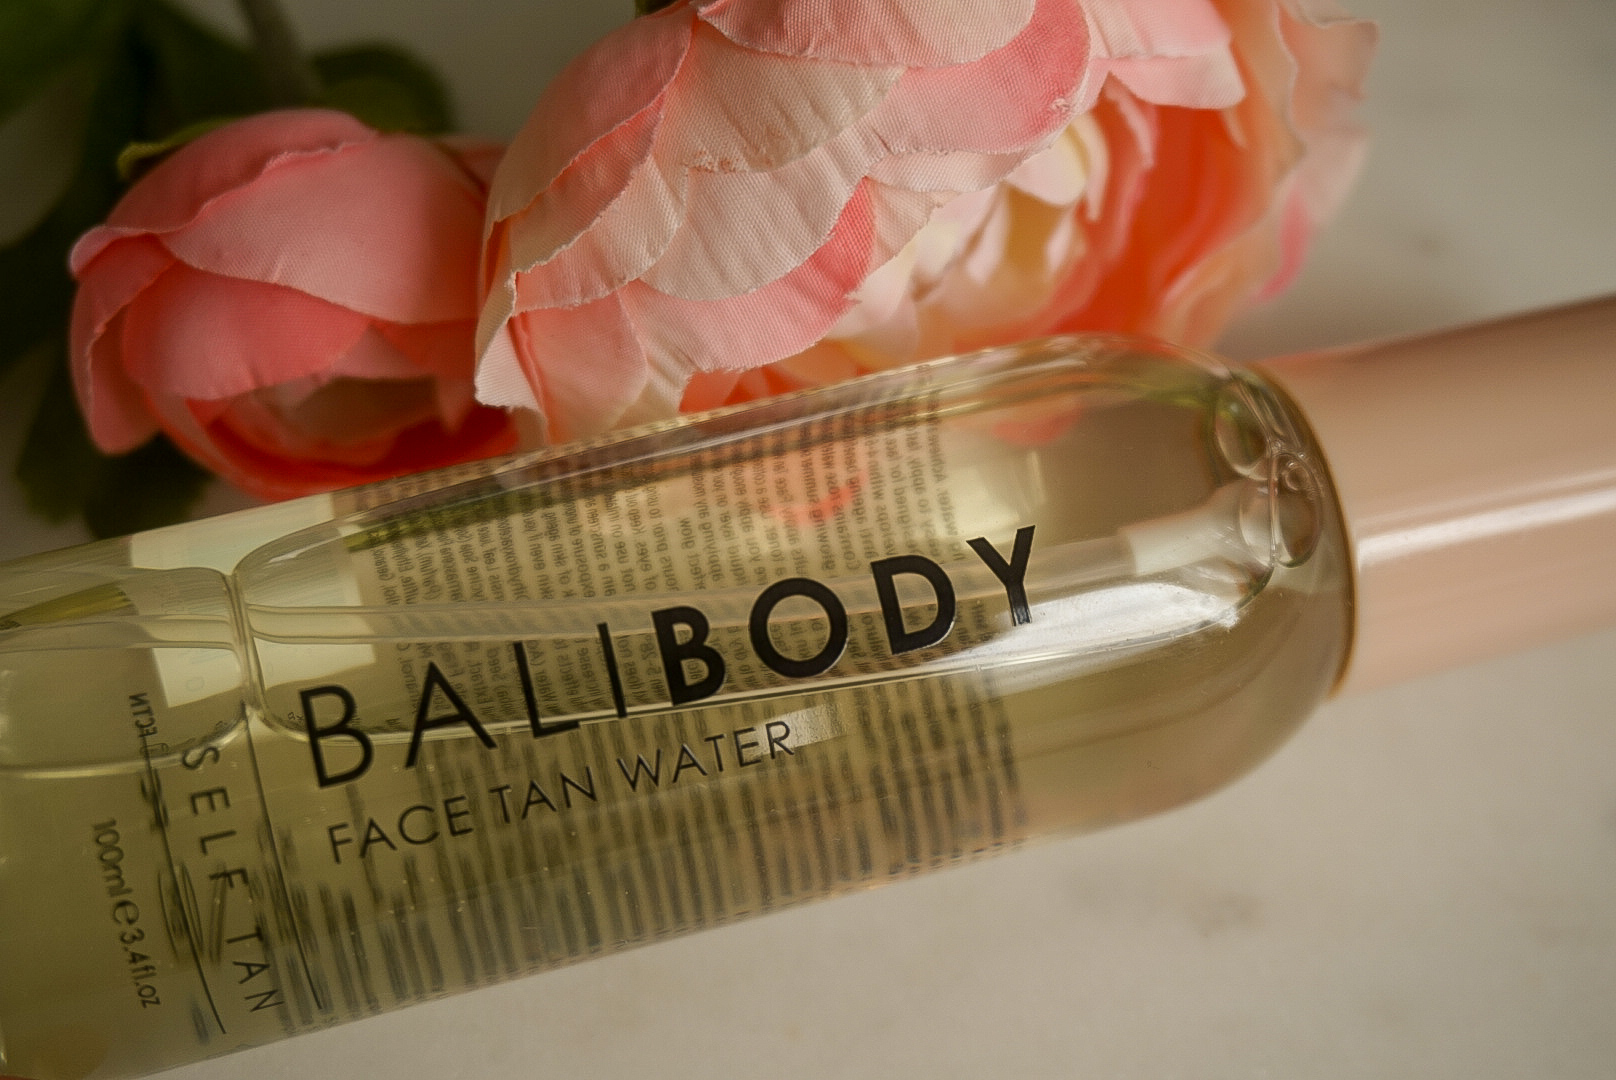 Bali Body Face Tan Water | Not Vicarious